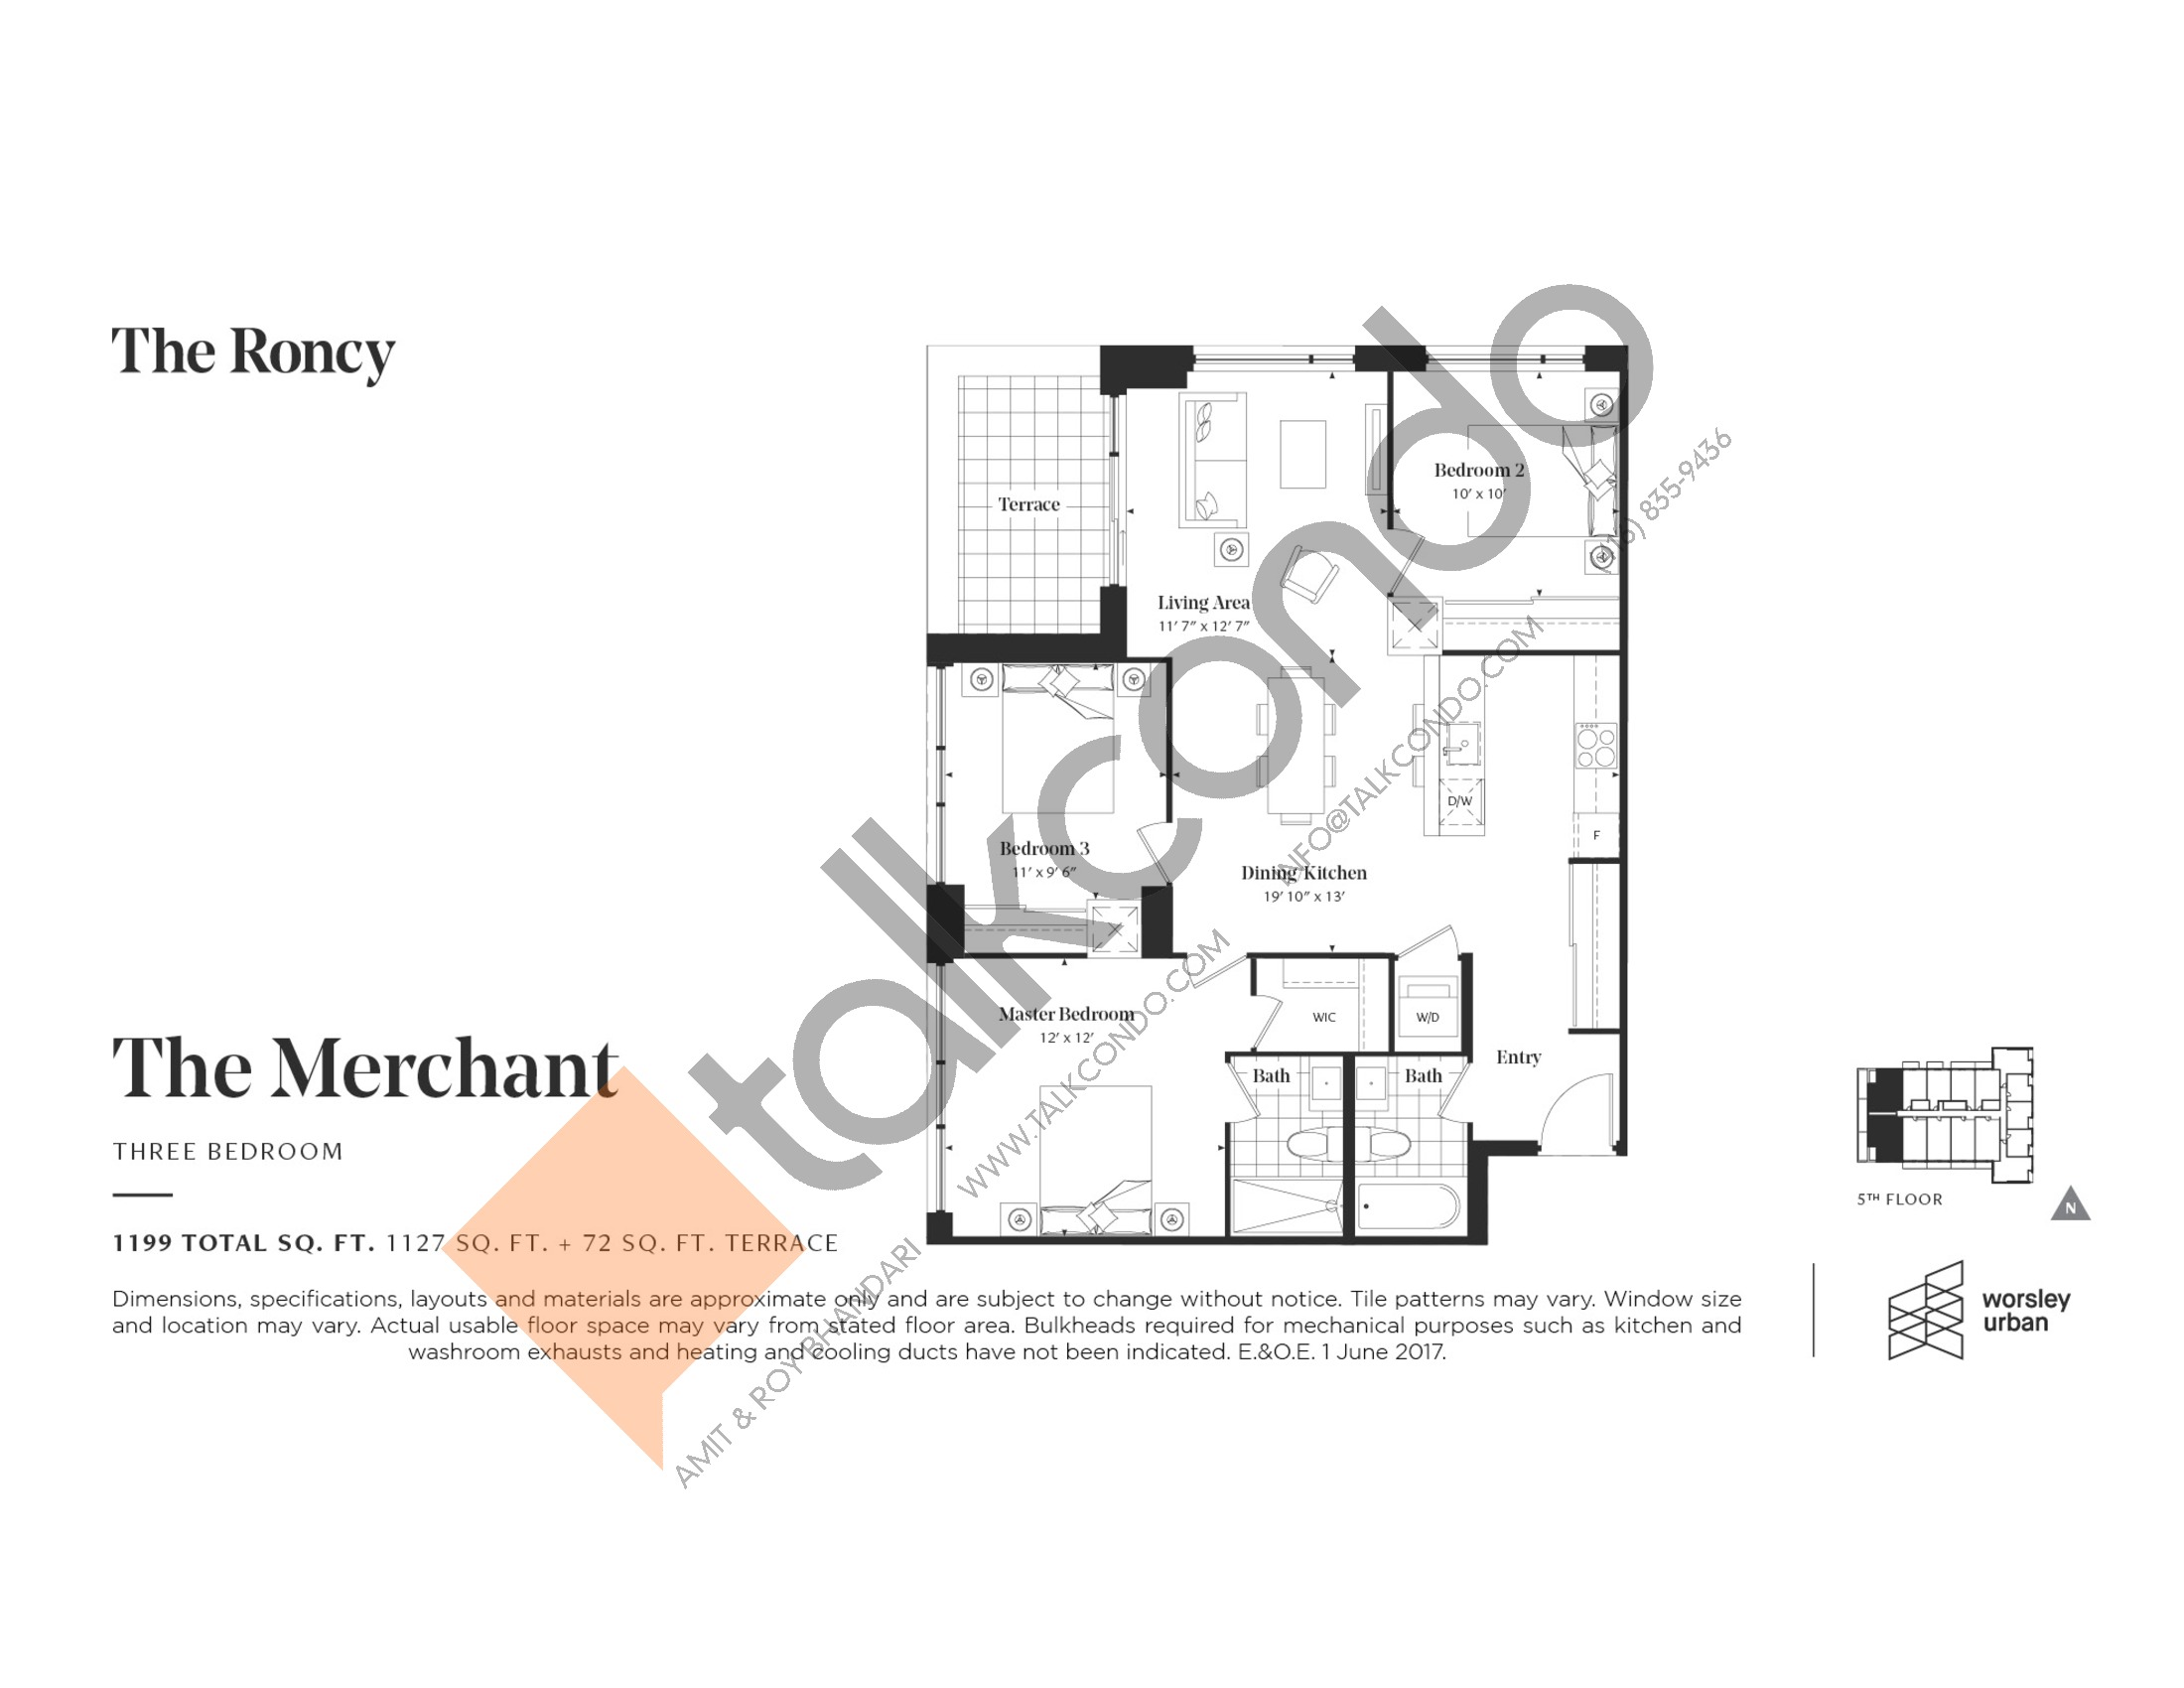 The Merchant Floor Plan at The Roncy Condos - 1127 sq.ft